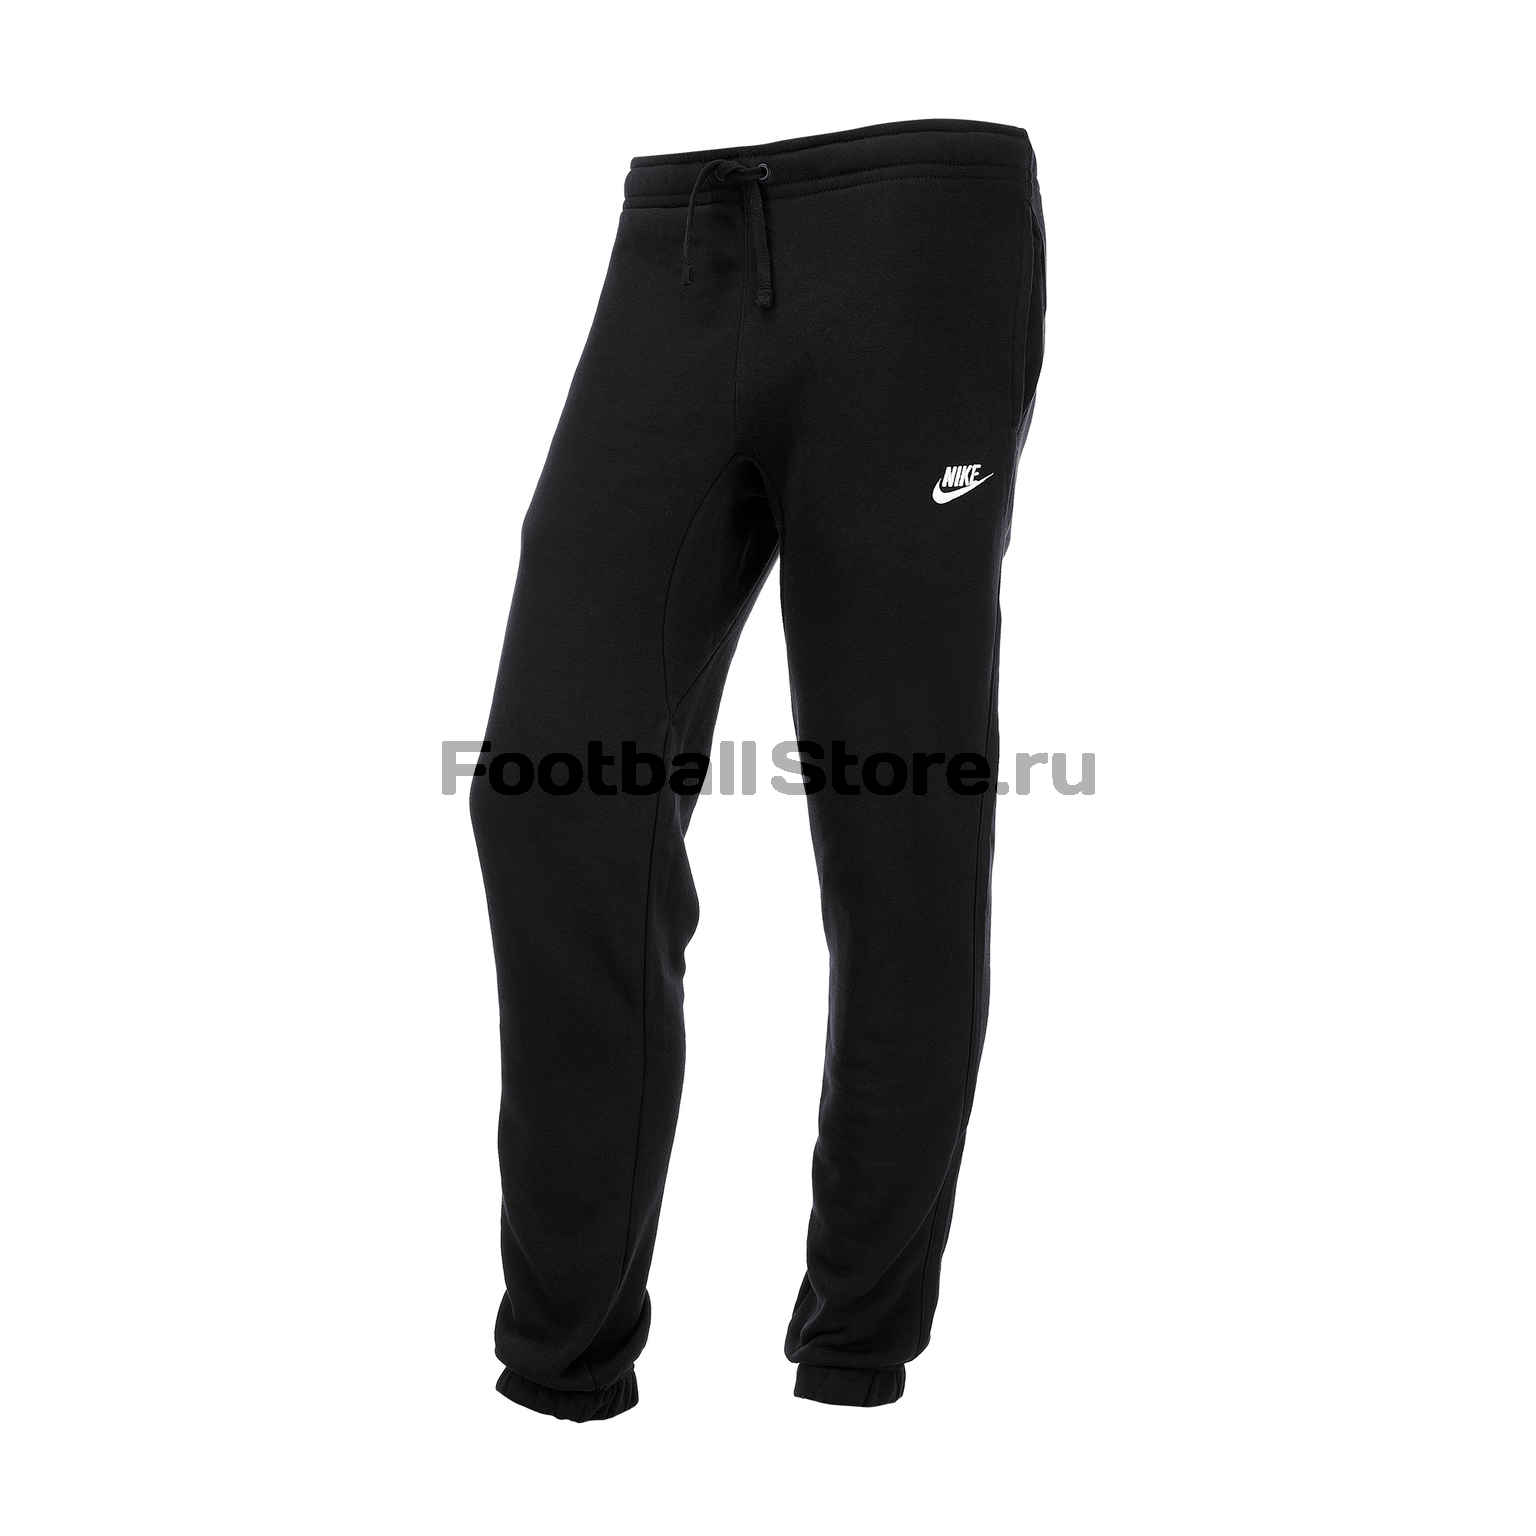 Брюки тренировочные Nike M NSW Pant Club 804406-010 original new arrival 2017 nike as m nsw av15 pant wvn men s pants sportswear